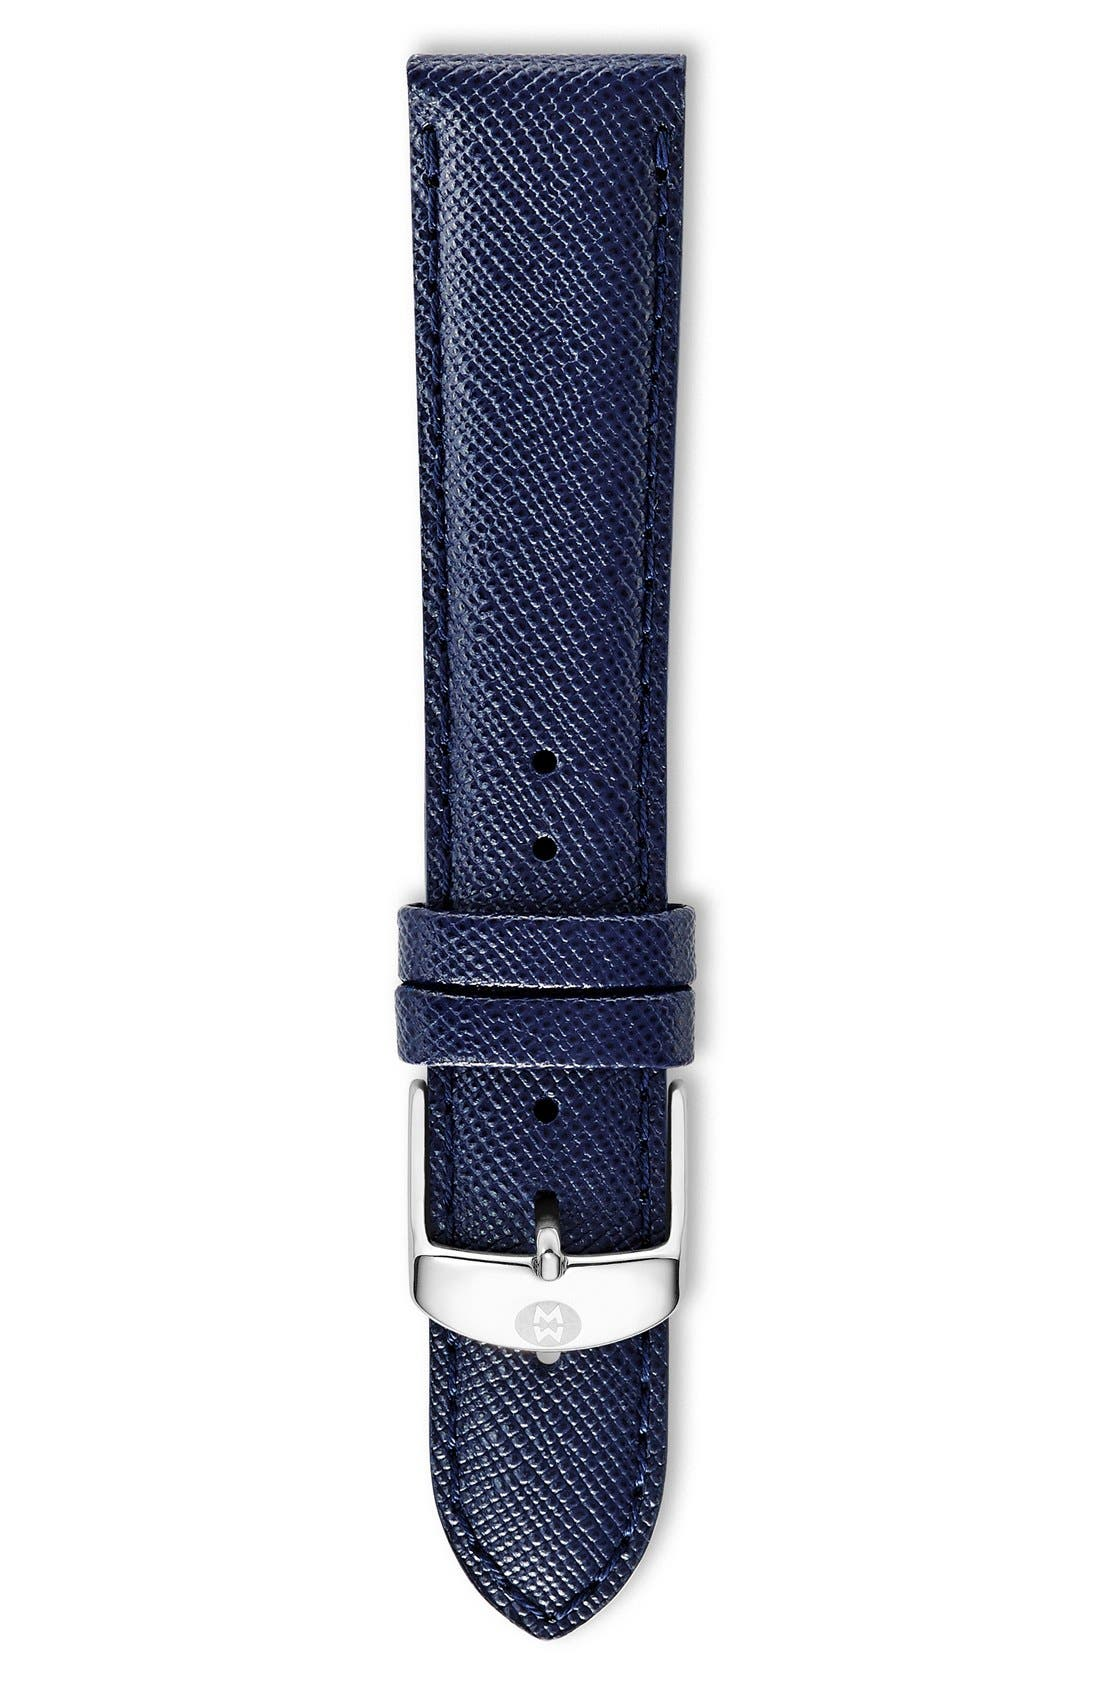 16mm Saffiano Leather Watch Strap,                             Main thumbnail 5, color,